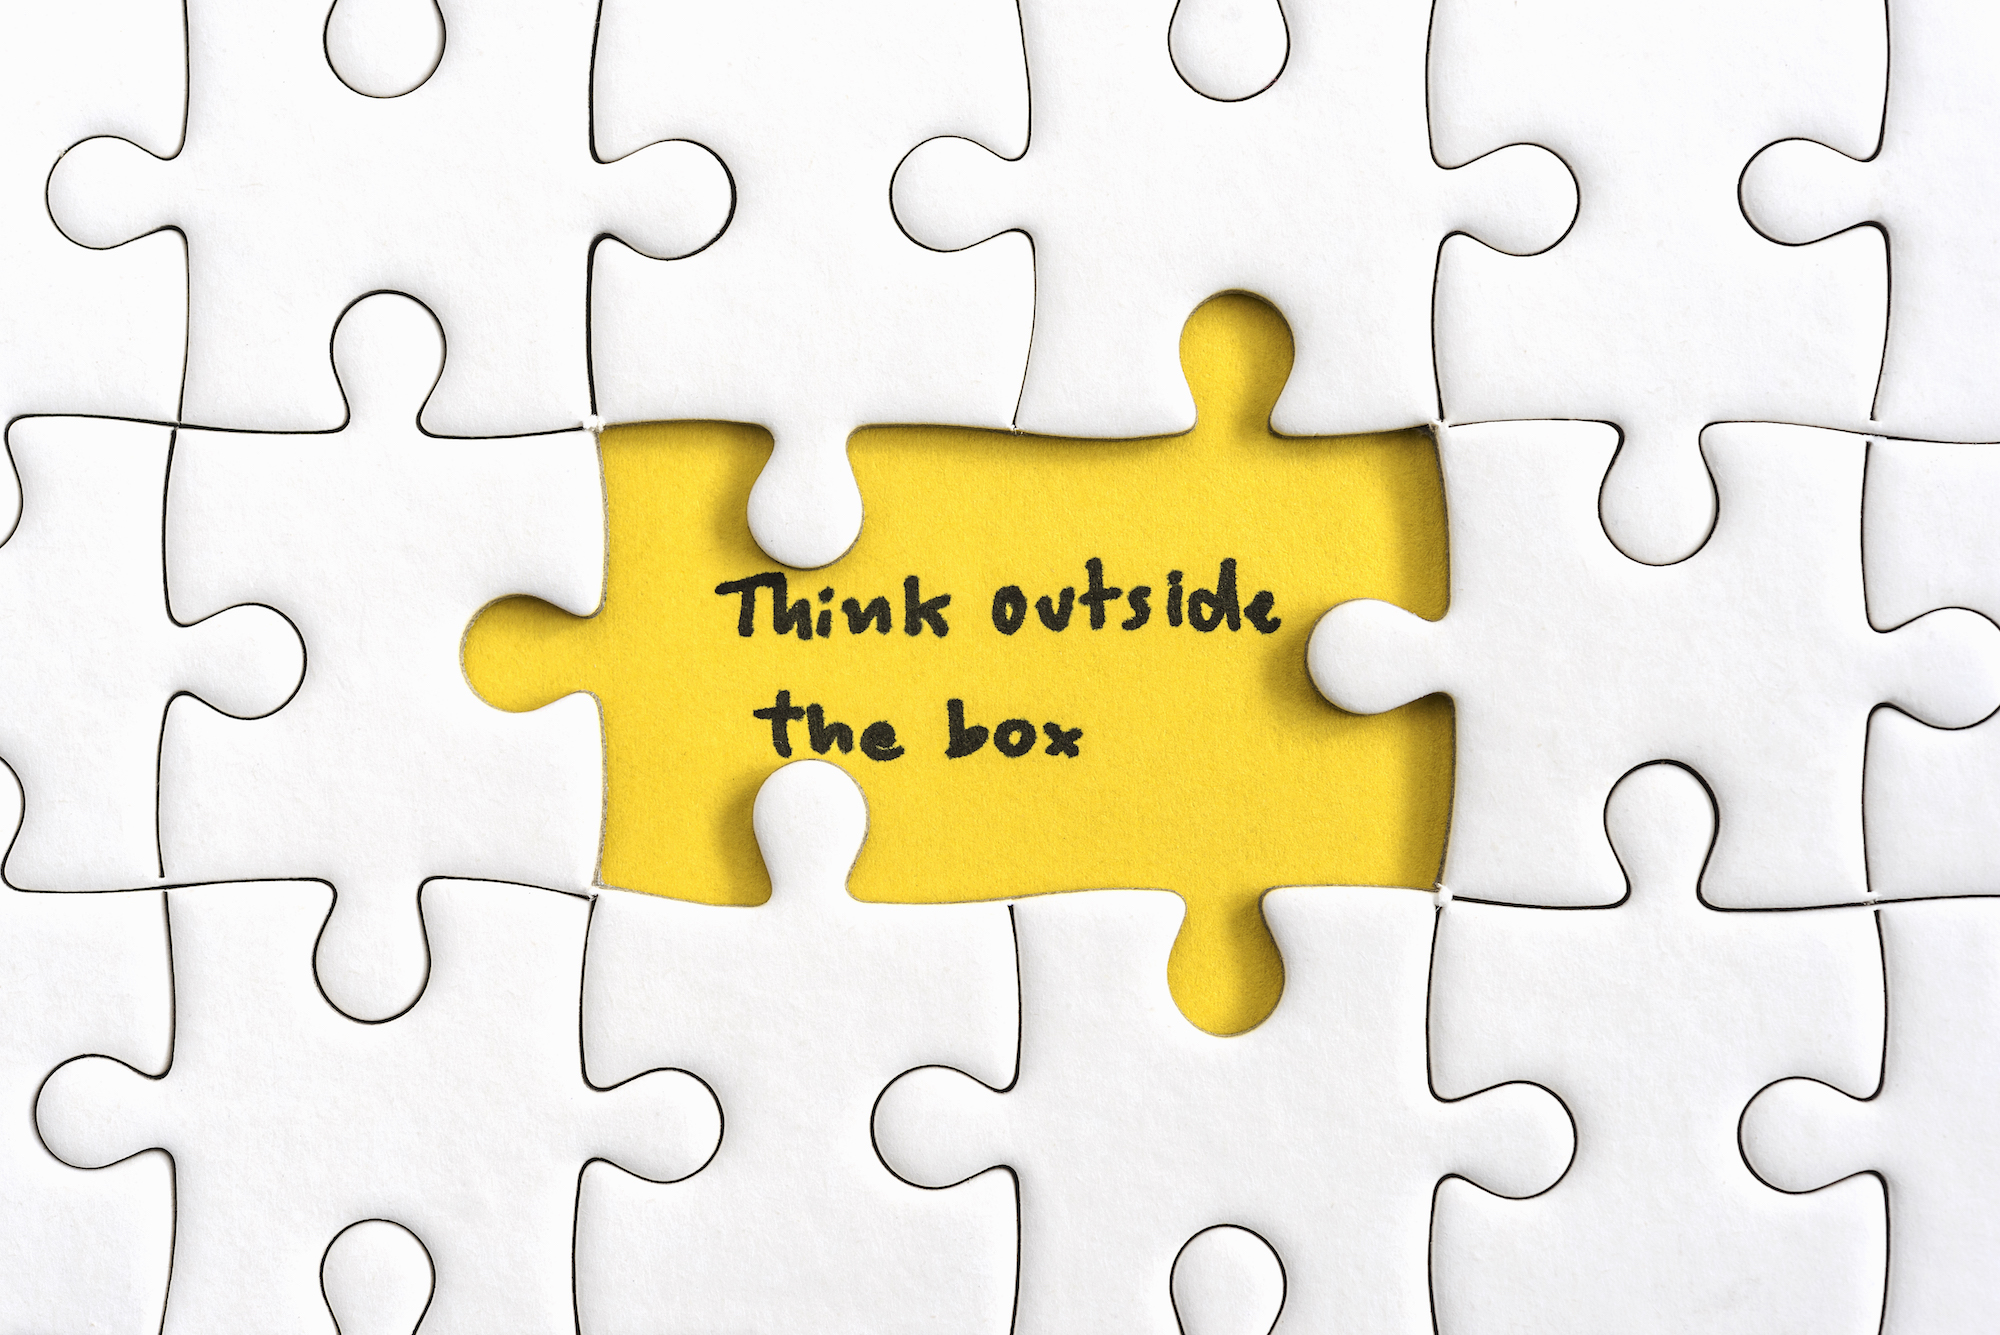 asx-snl-small-cap-asx Jigsaw puzzle piece with two missing and hand writing letters word think outside the box, Quotes business concept